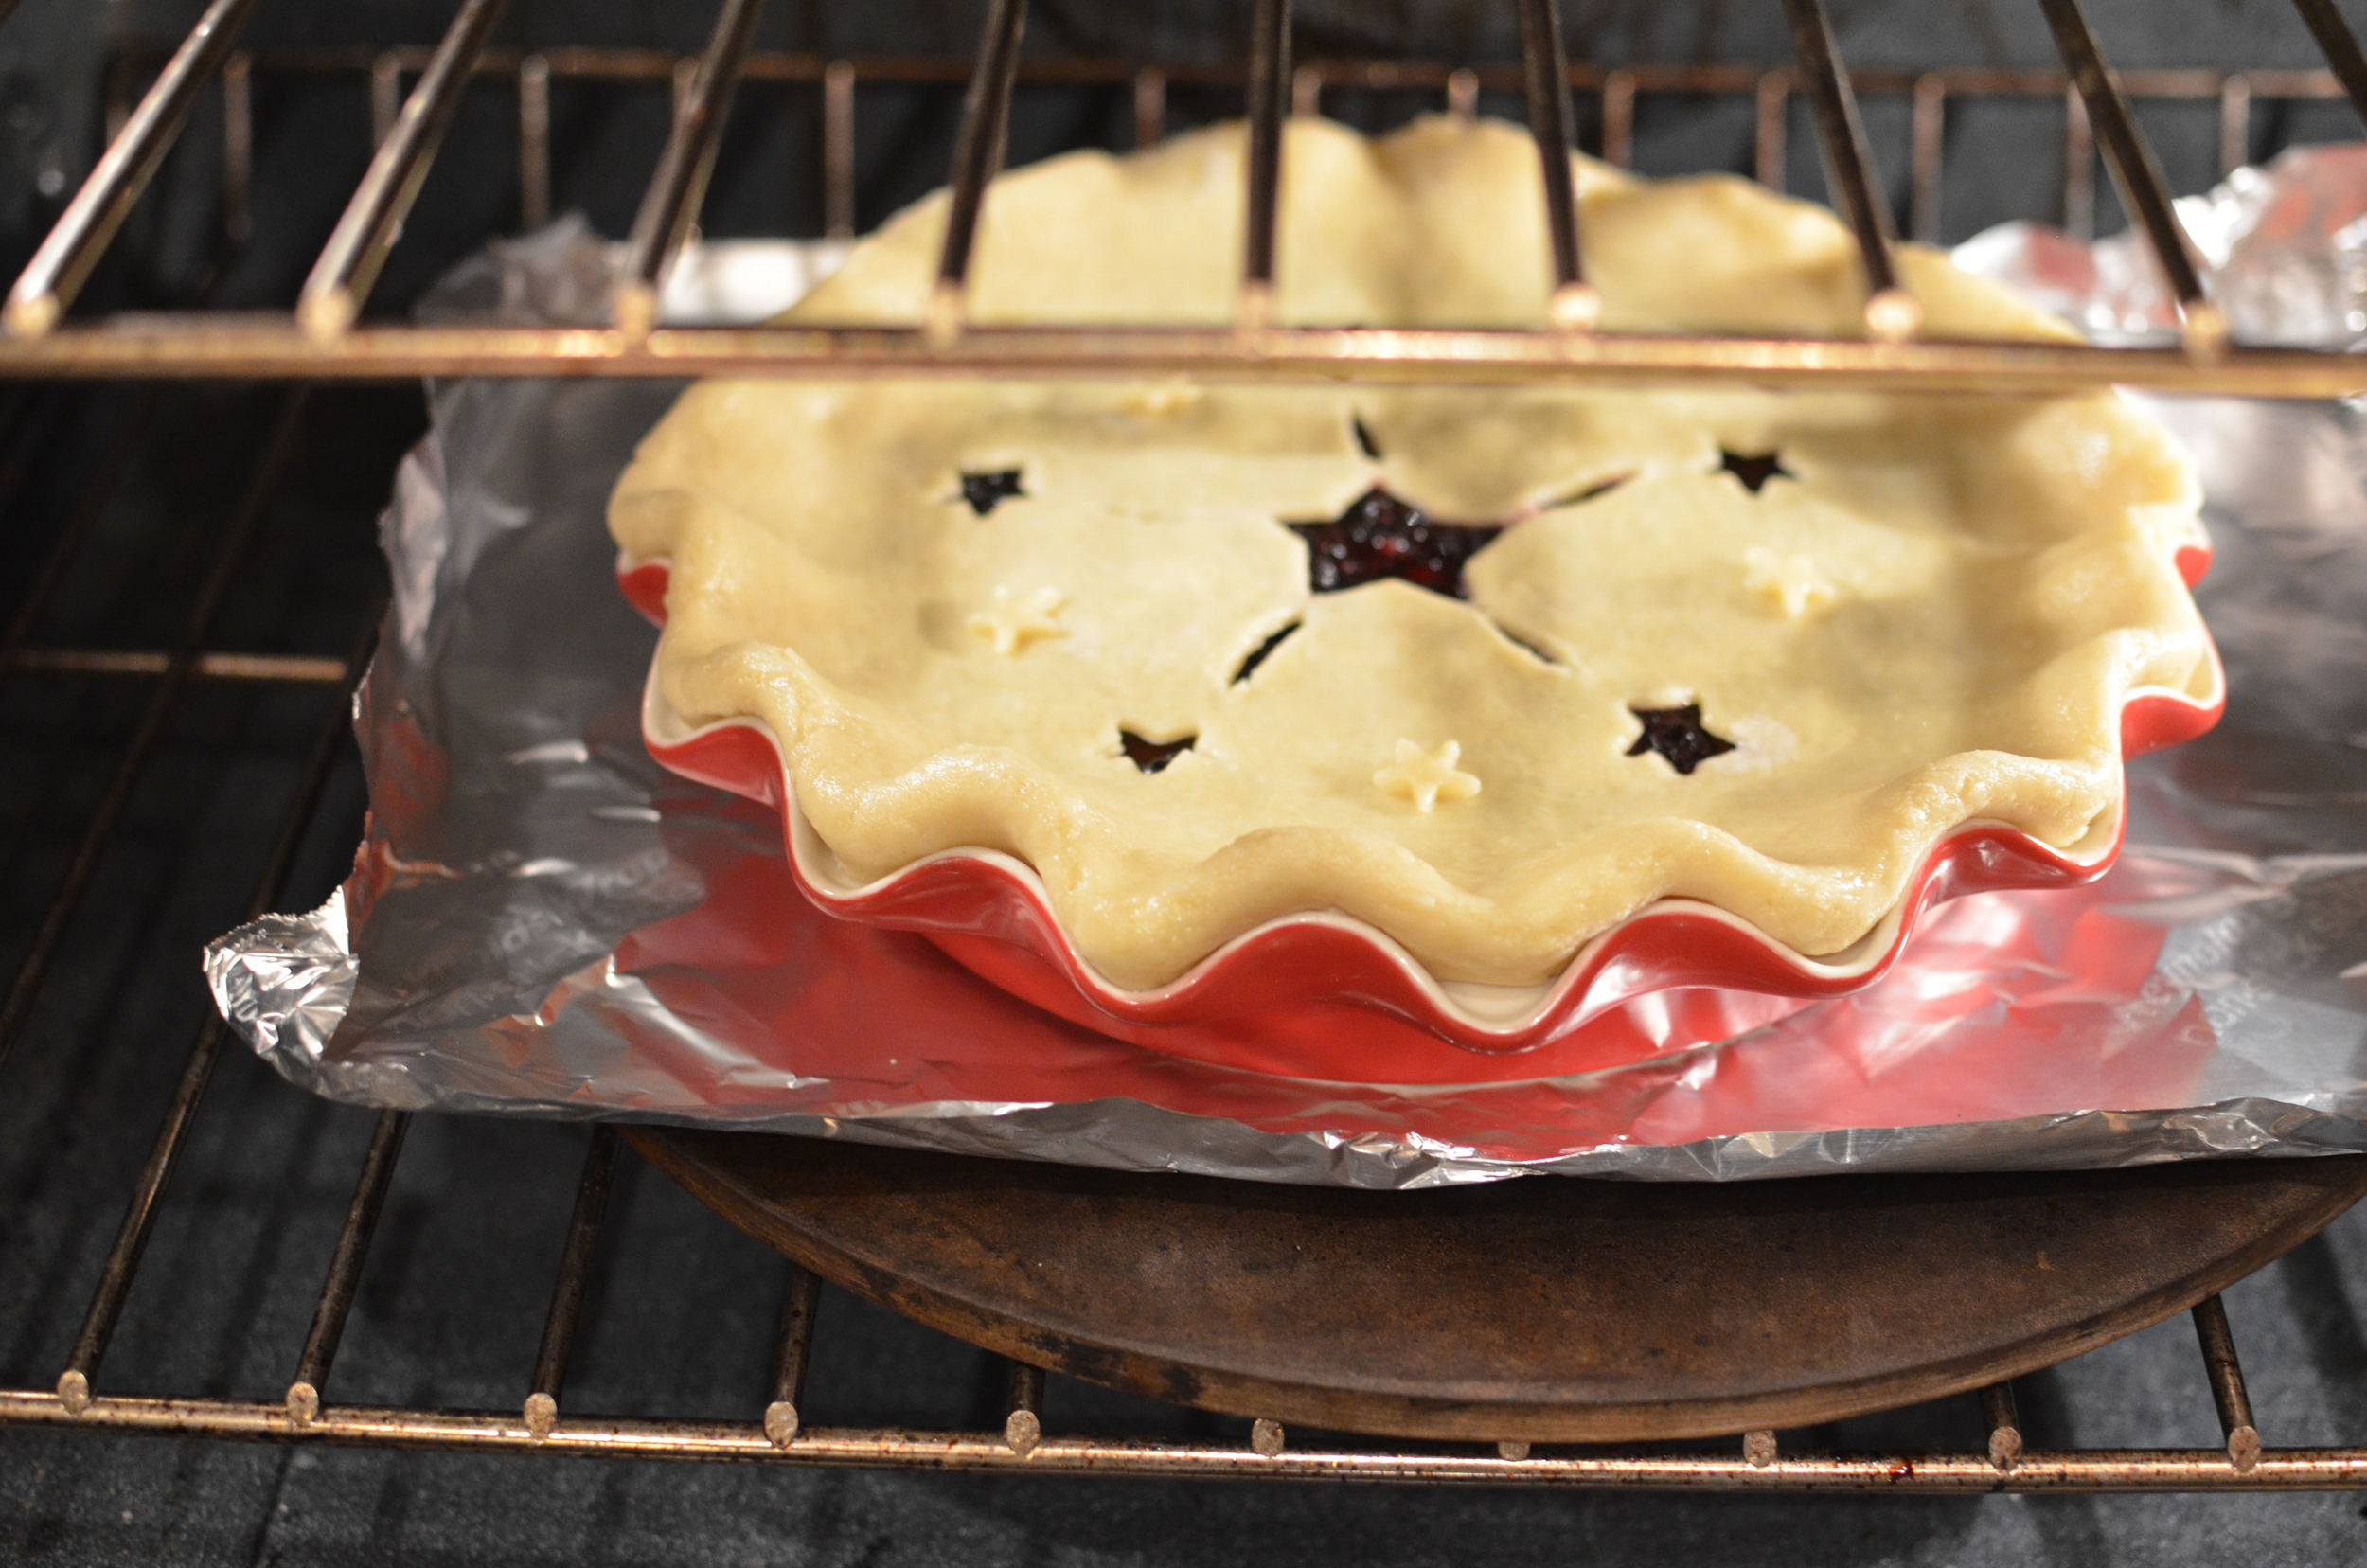 When the pie has chilled for an hour, place it into the preheated oven for 45-55 minutes.